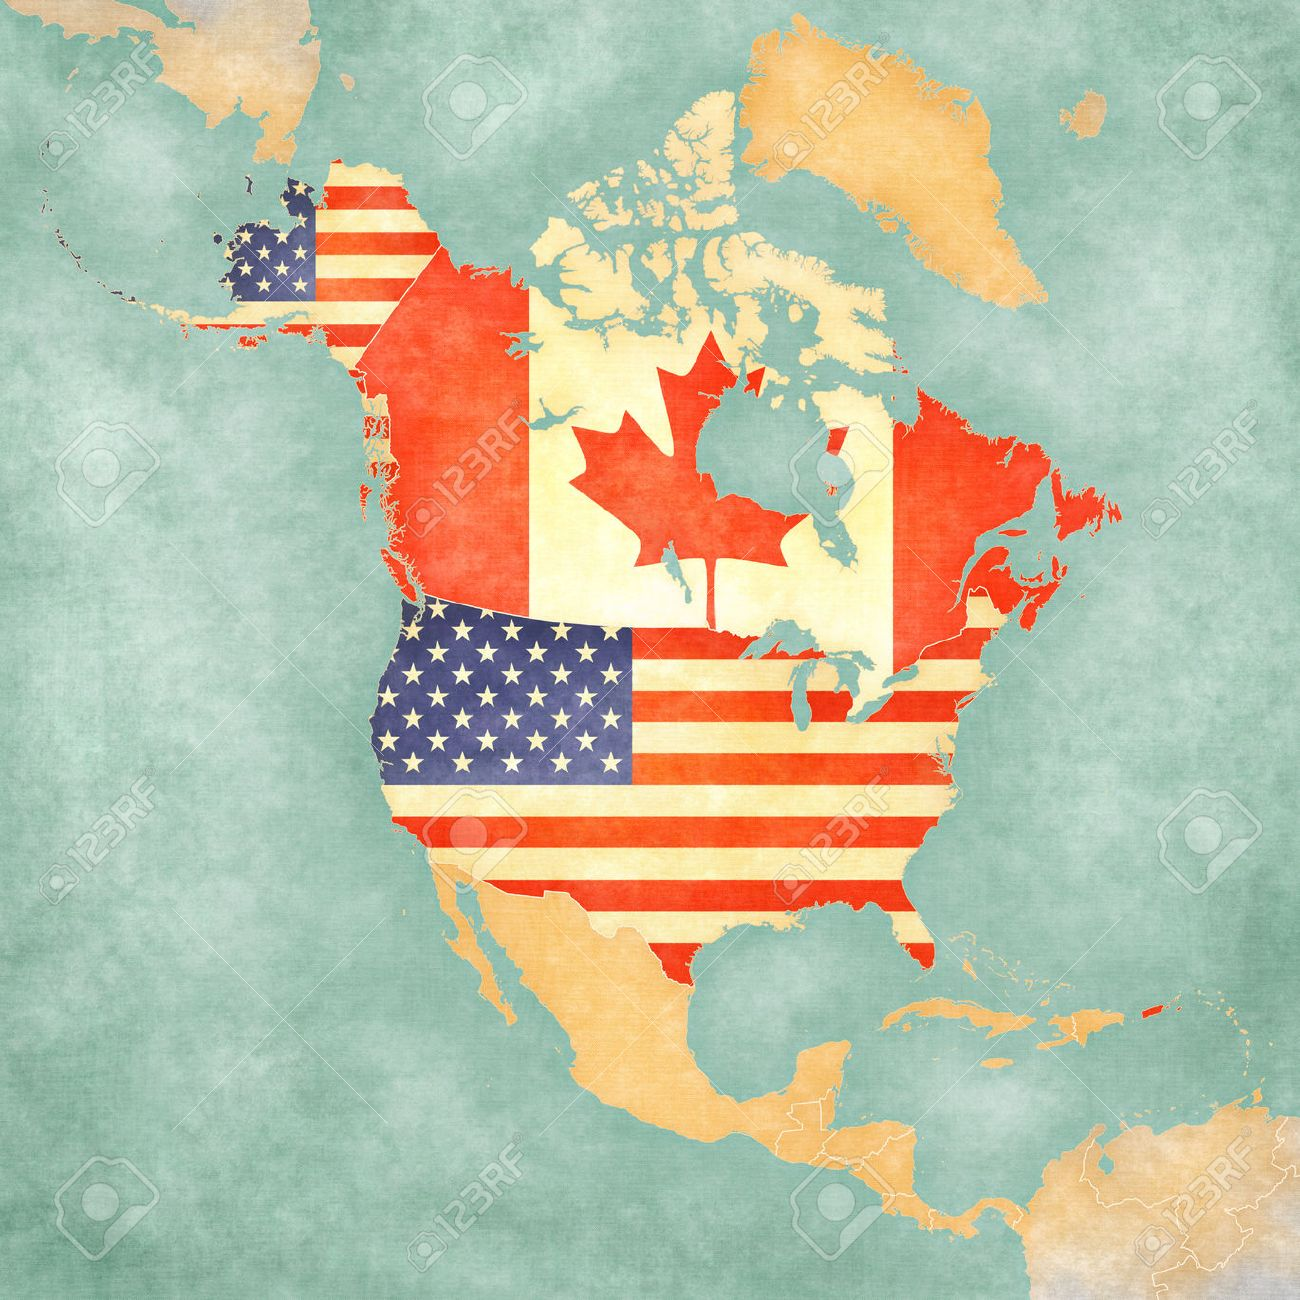 USA and Canada on the outline map of North America. The Map is..